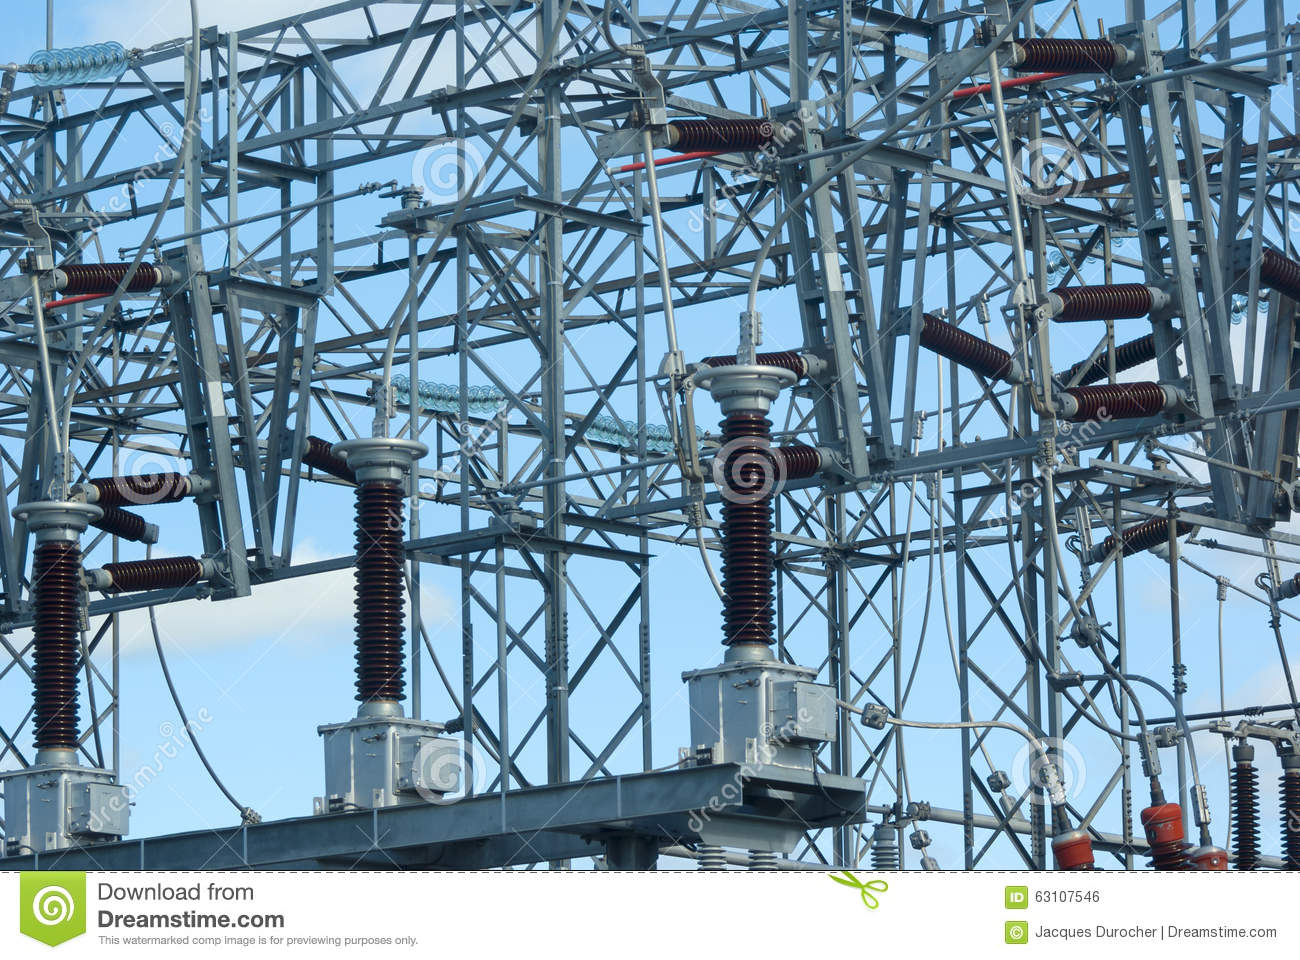 High Voltage Electrical Wire : high voltage power plant electricity distribution wire